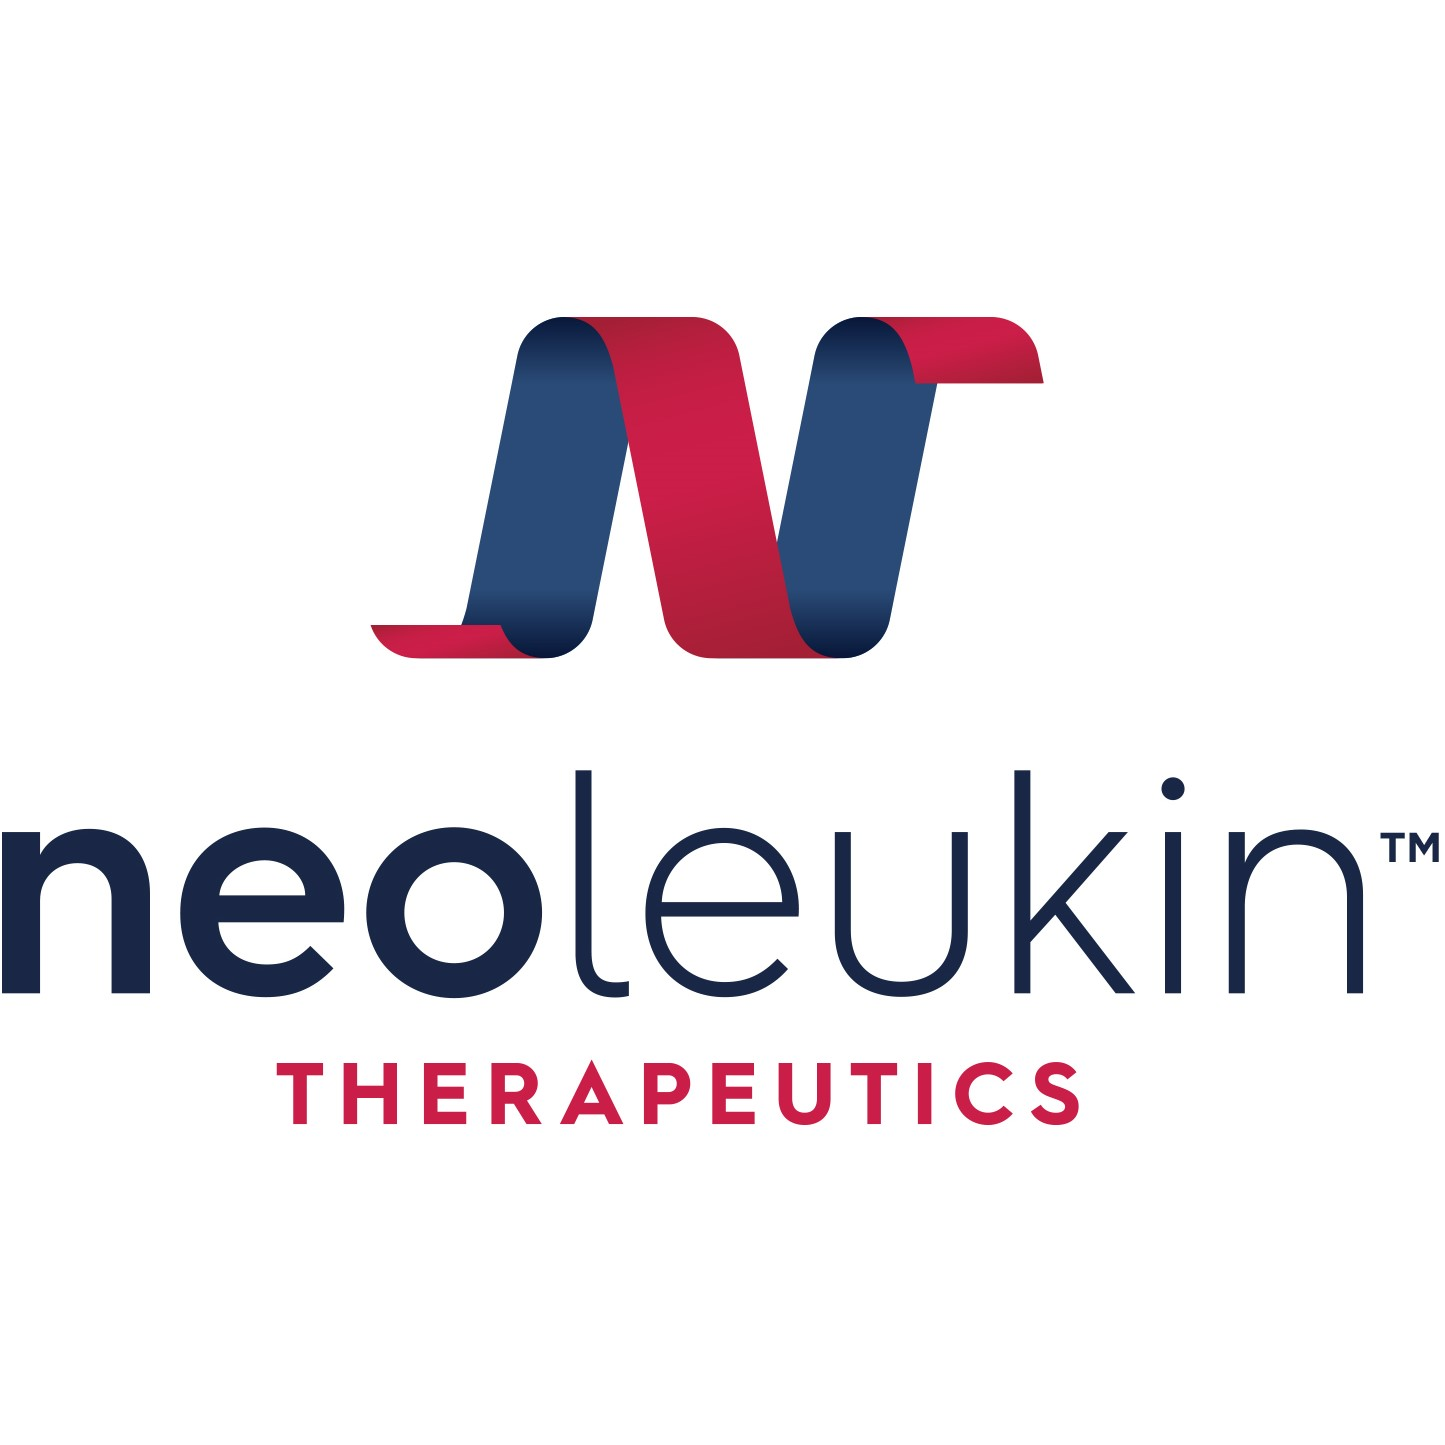 Neoleukin Therapeutics Announces Appointment of Martin Babler to Board of Directors